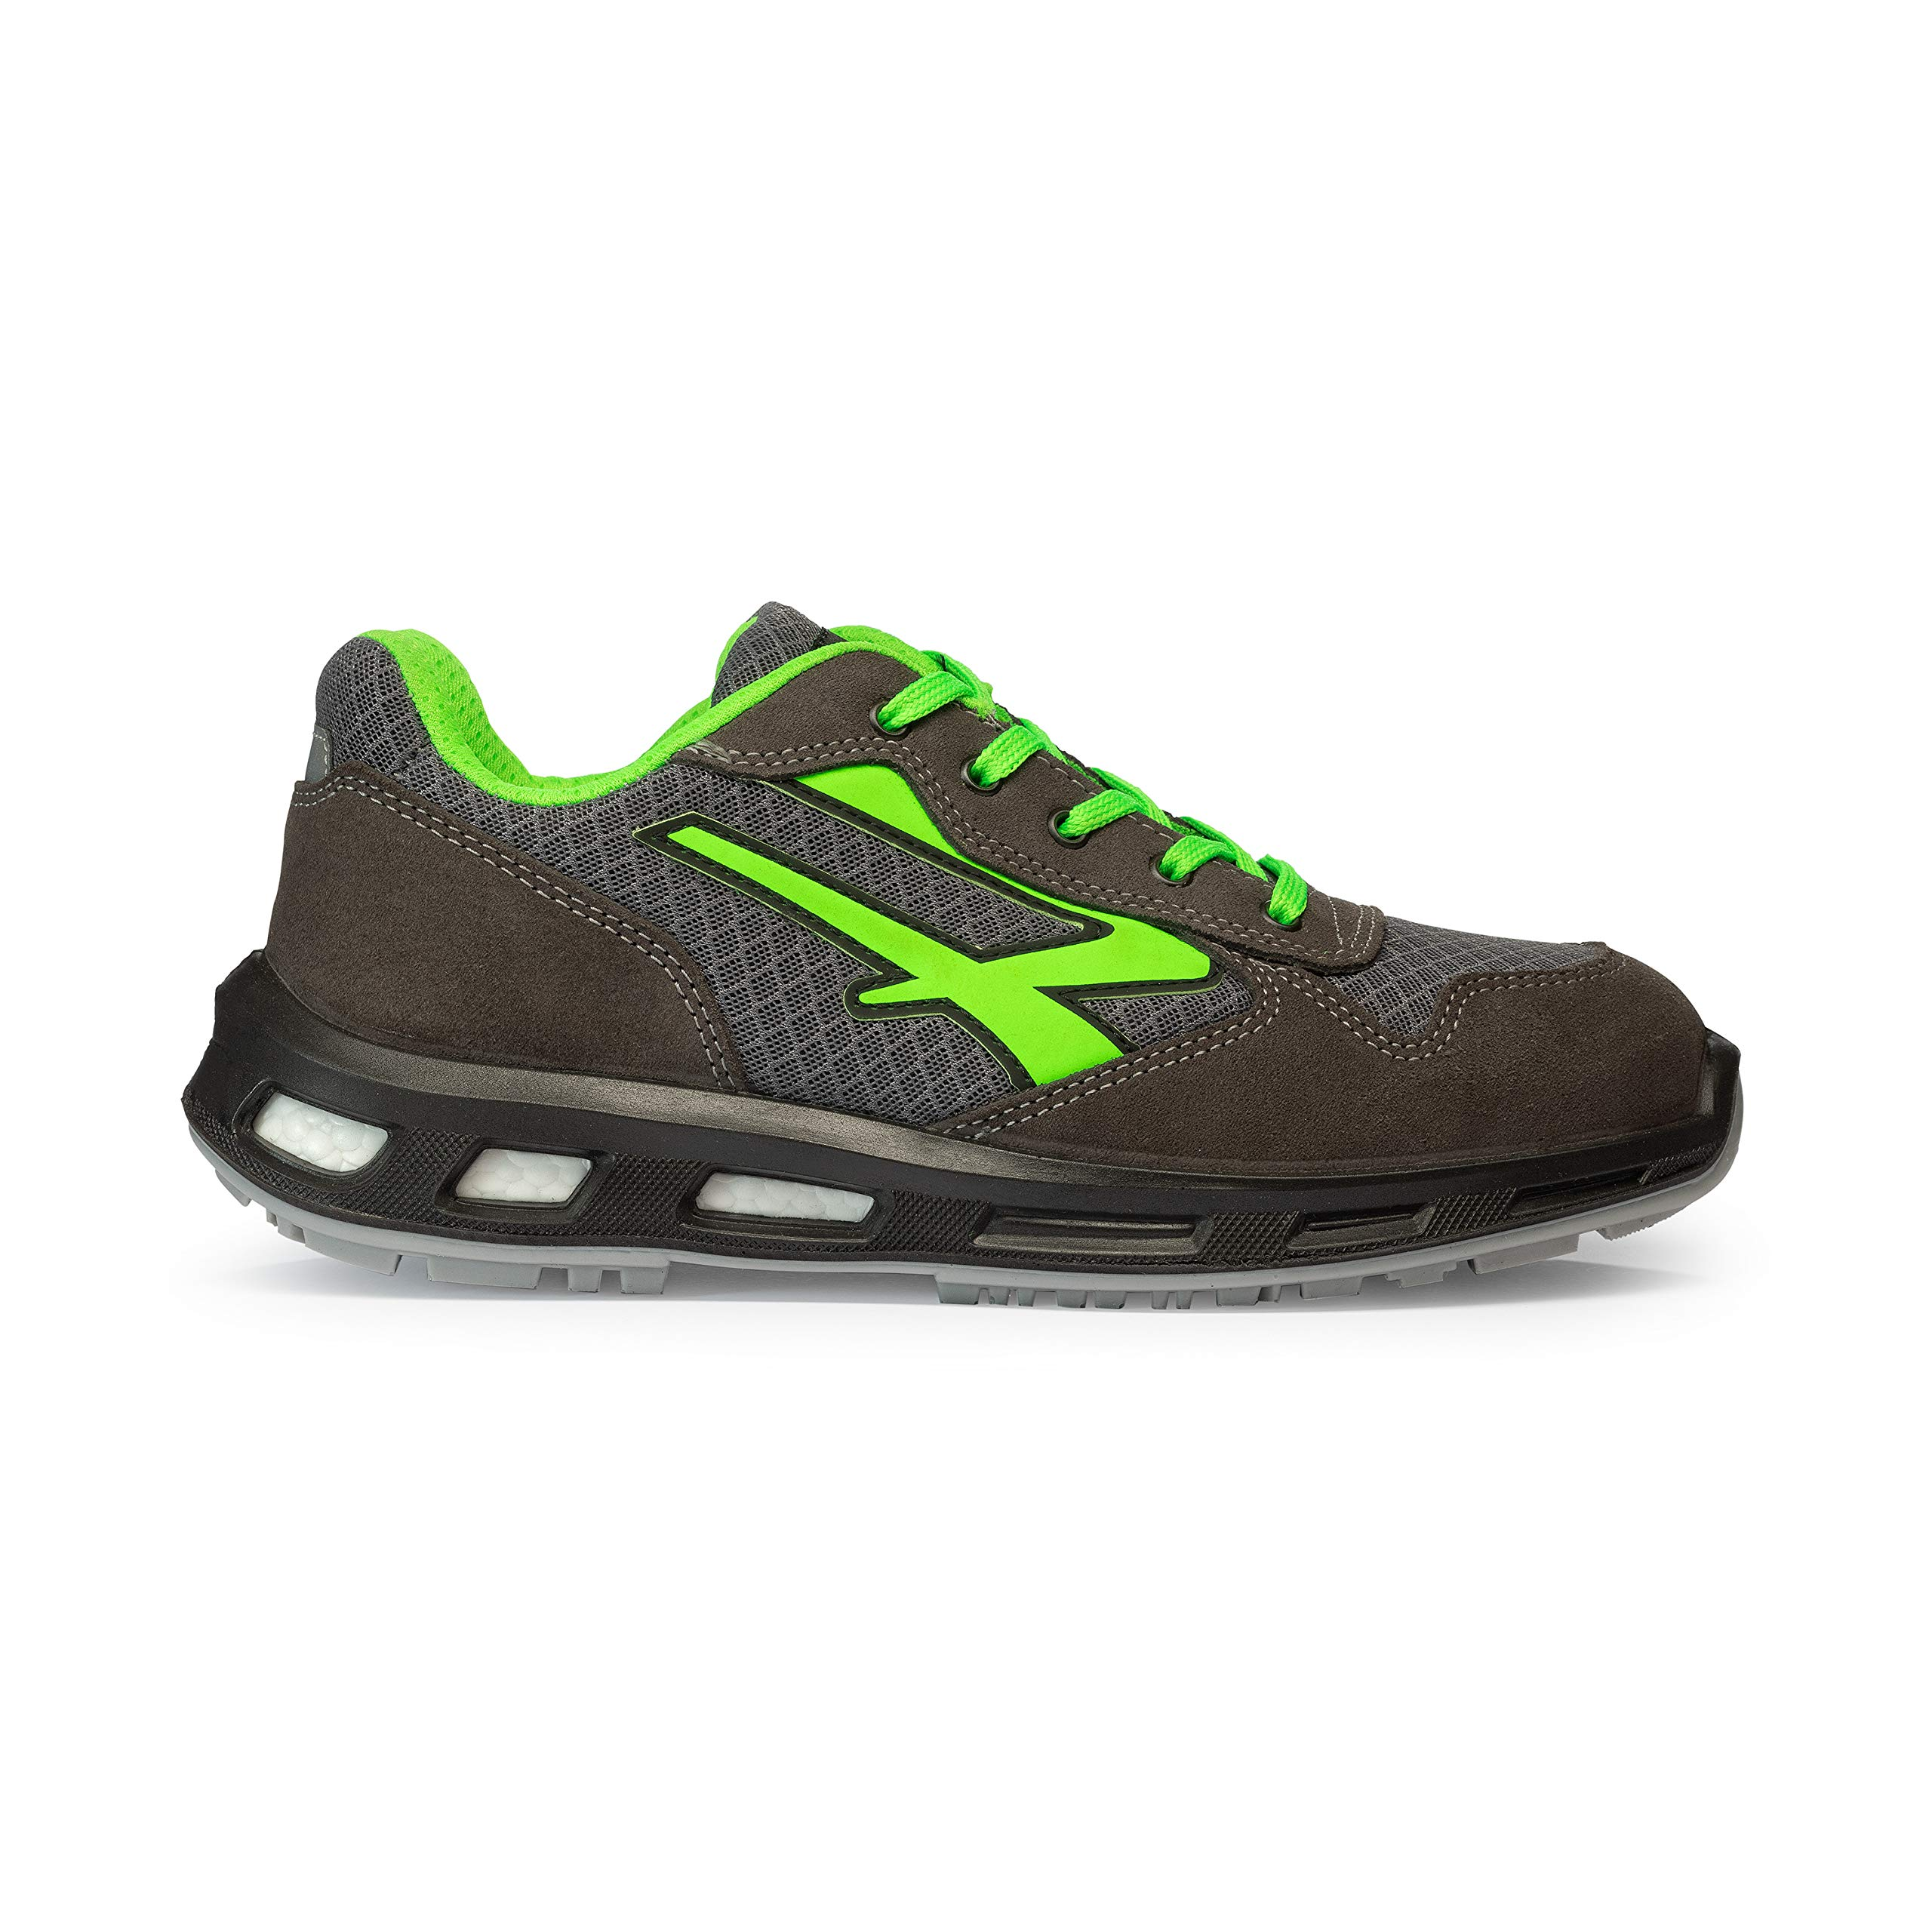 new product b14b6 a0c35 U-Power RL20036 RedLion POINT - Scarpe antinfortunistiche, Grigio scuro, 43  EU